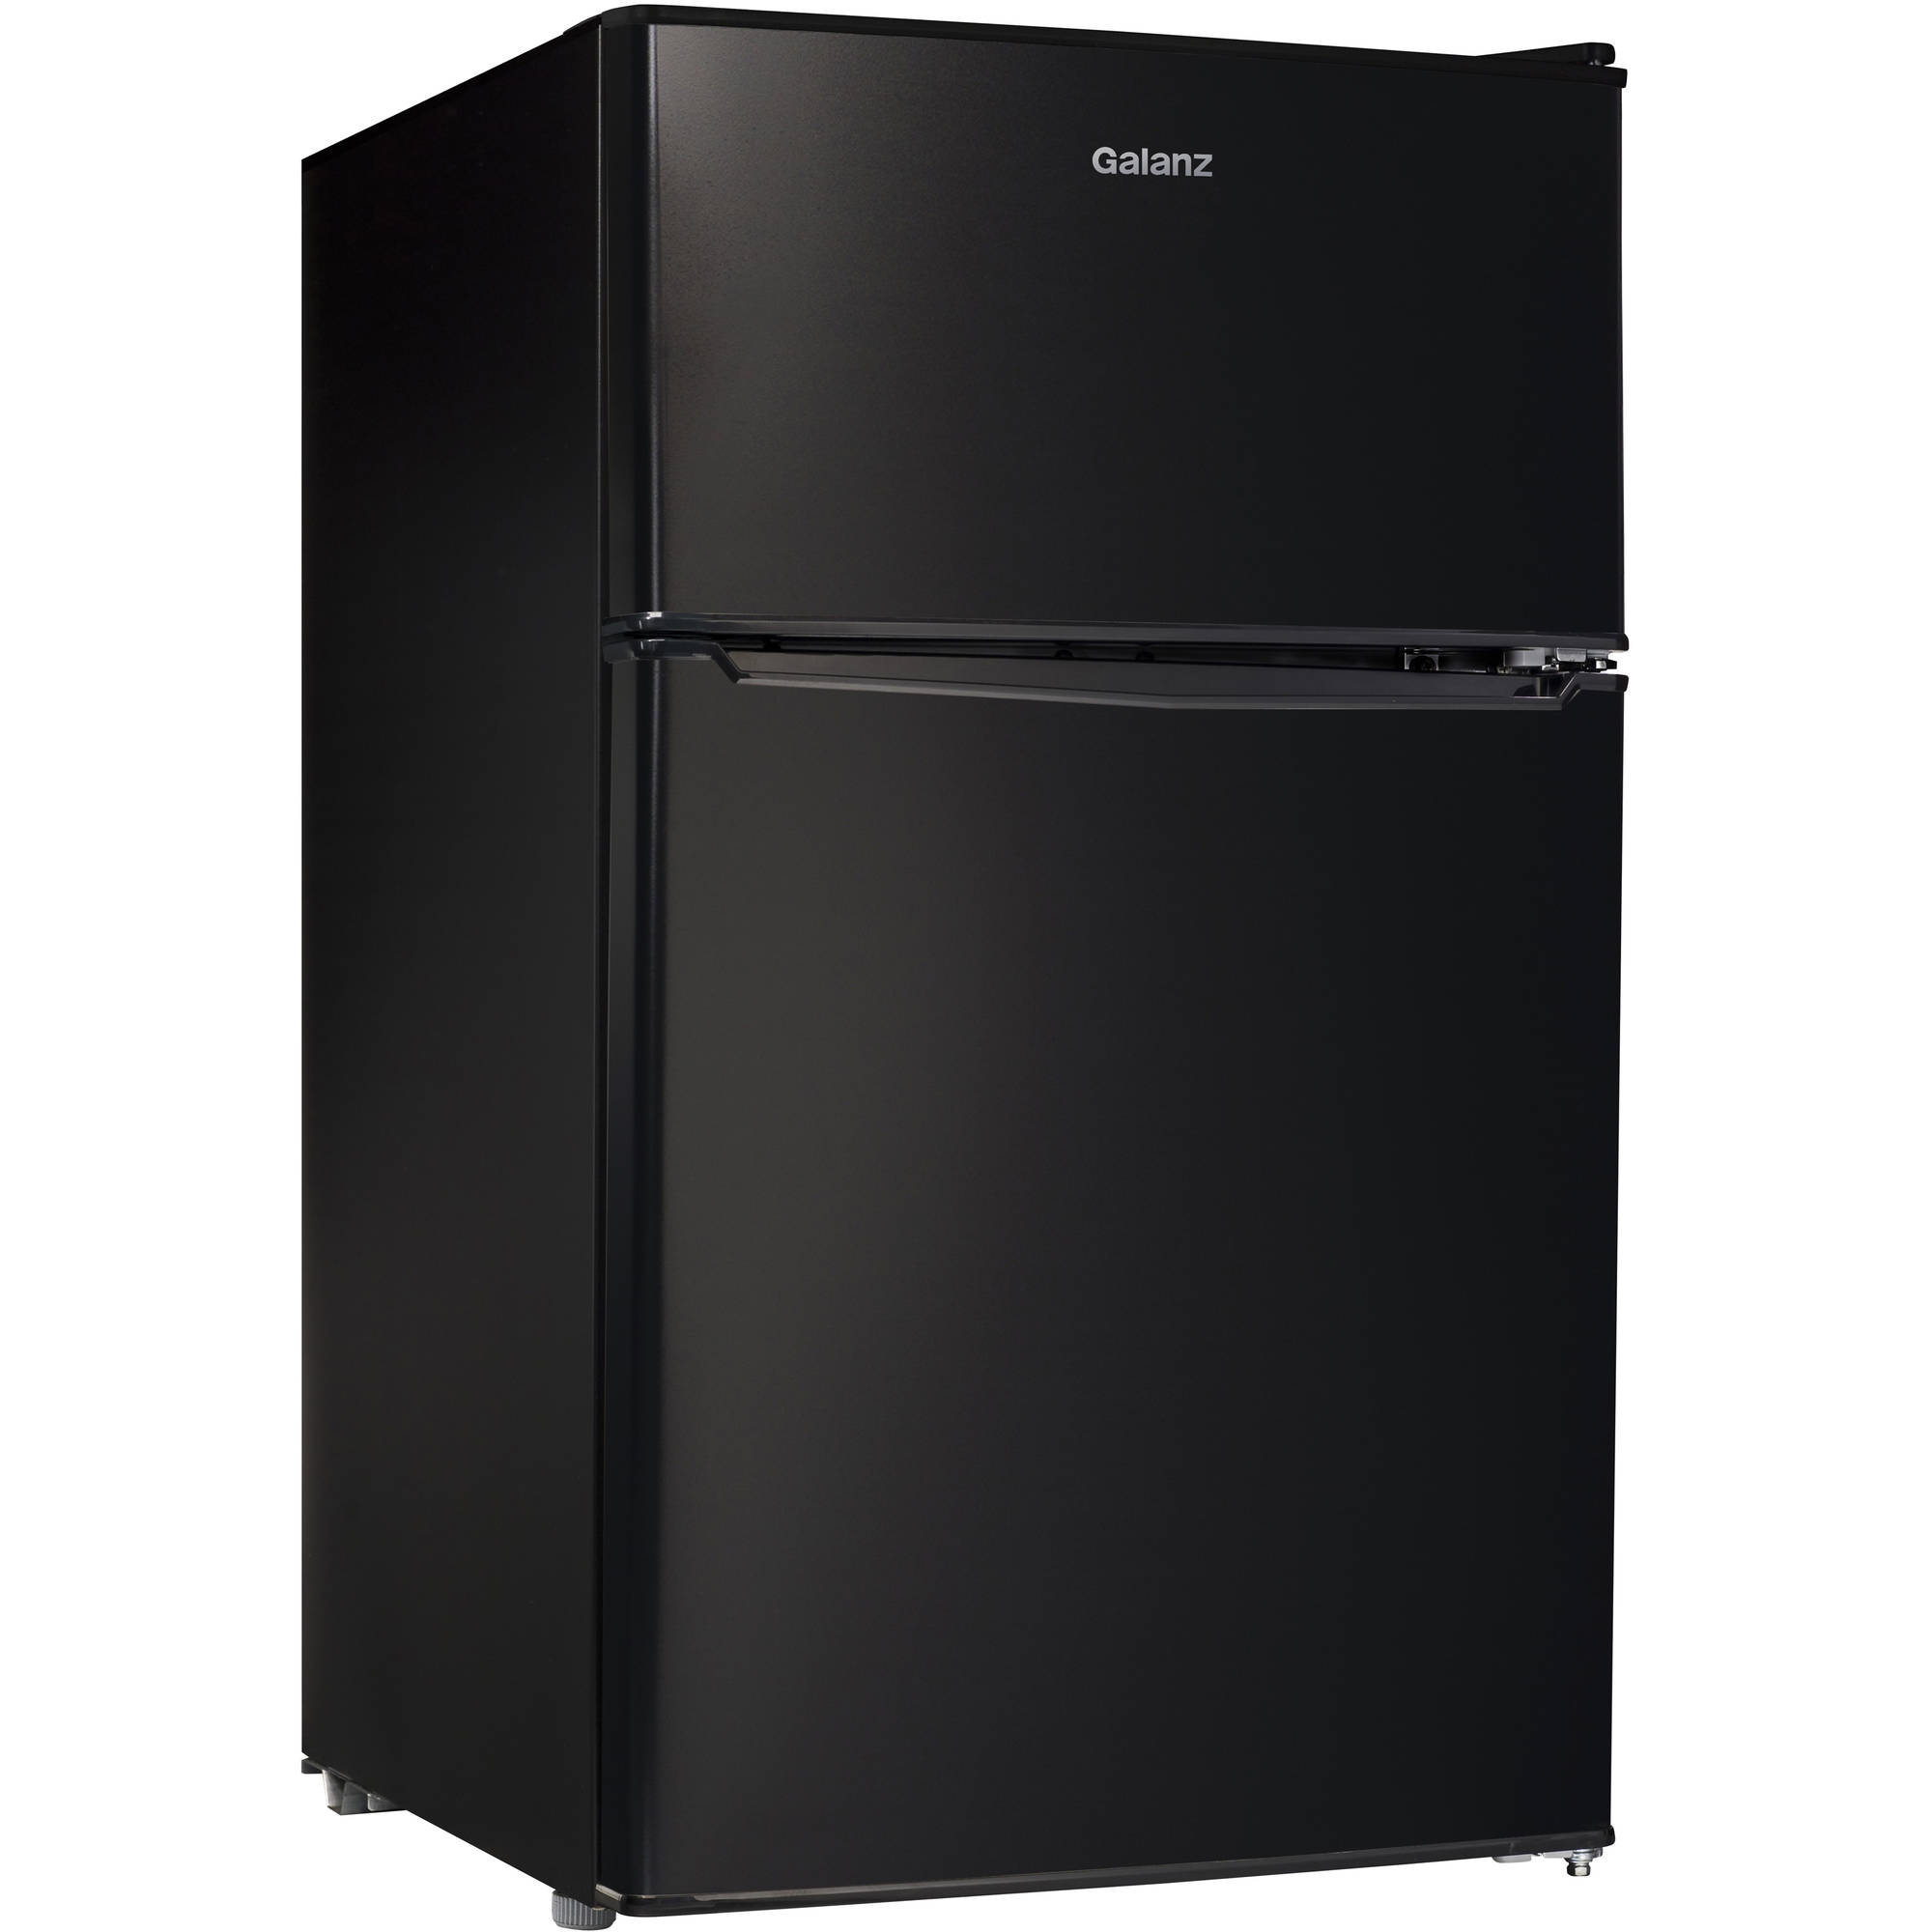 Galanz 3.1 cu ft Compact Refrigerator Double Door Black  sc 1 st  Walmart.com : appliance door - pezcame.com